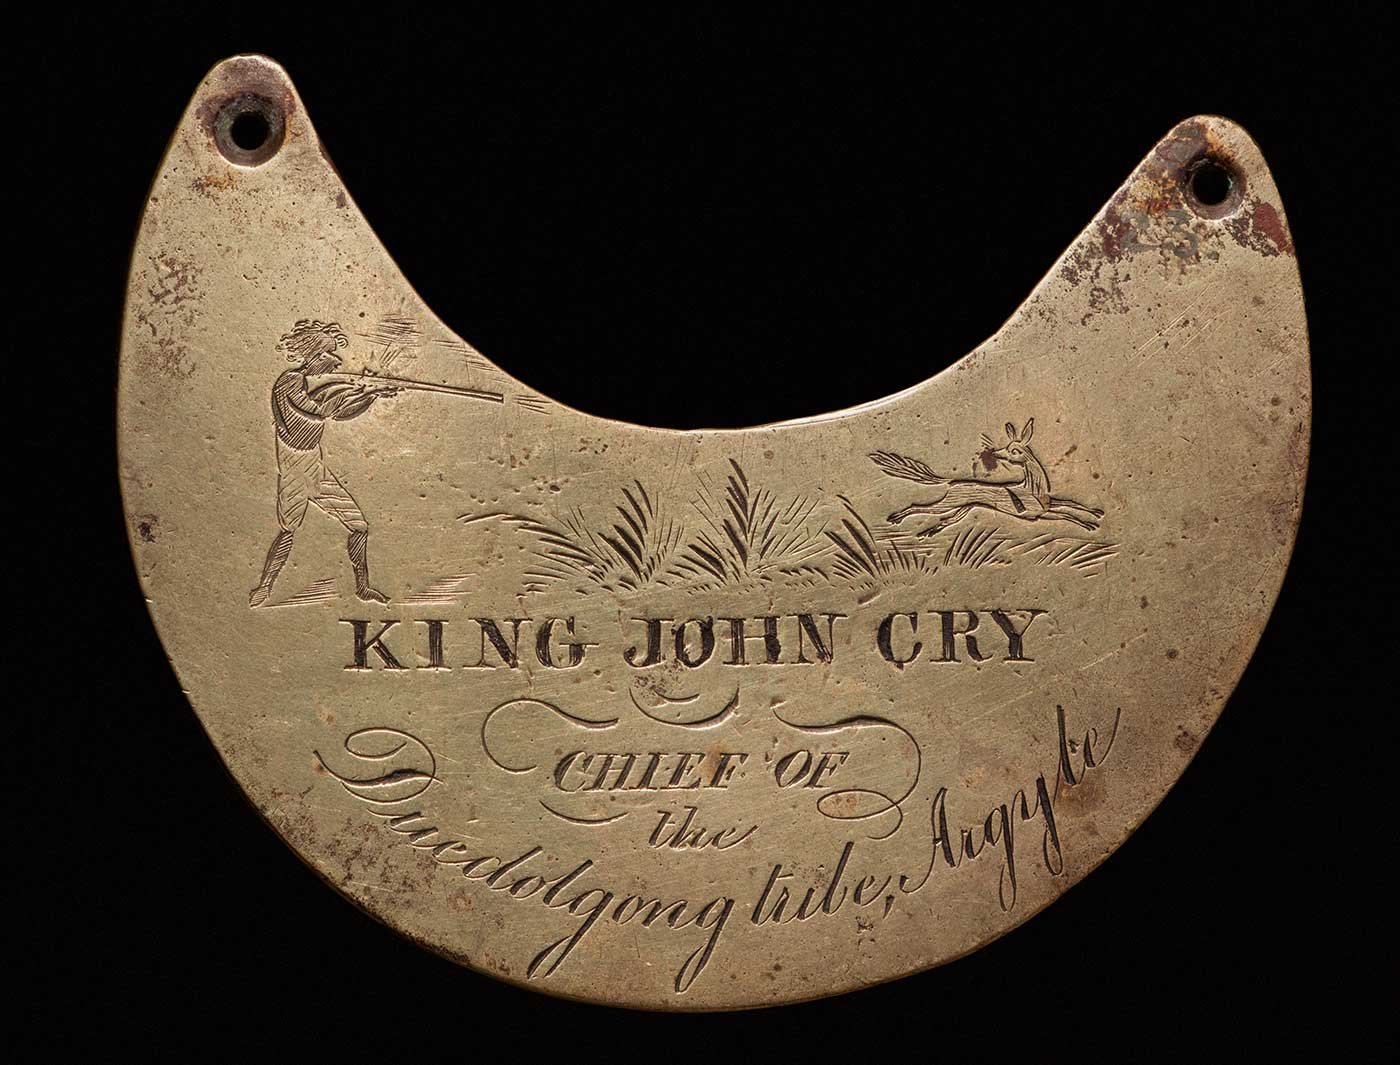 A crescent shaped, brass breastplate with a hole at the edge of each horn to attach a chain. 'KING JOHN CRY / CHIEF OF / the / Duedolgong Tribe, Argyle' is engraved on the anterior surface. A man with a rifle is engraved on the left horn, and a fox is engraved on the right horn - click to view larger image